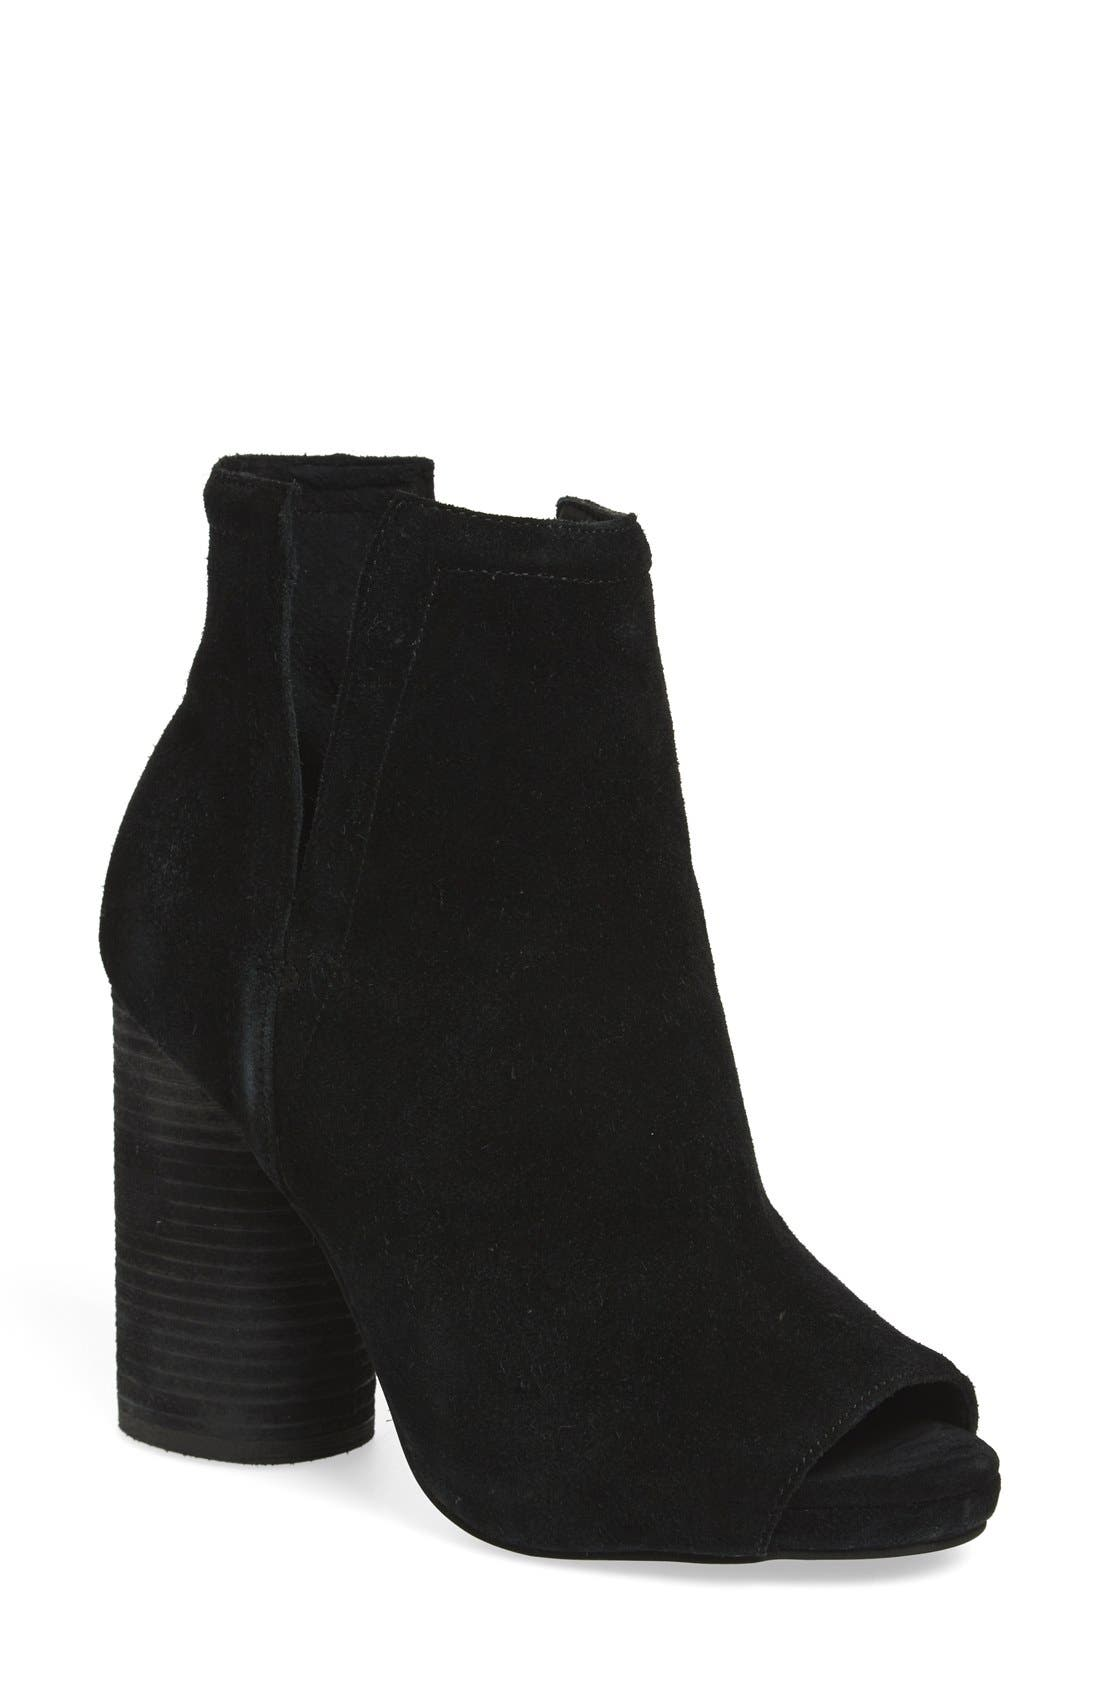 'Oath' Peep Toe Platform Bootie,                         Main,                         color, Black Oiled Suede